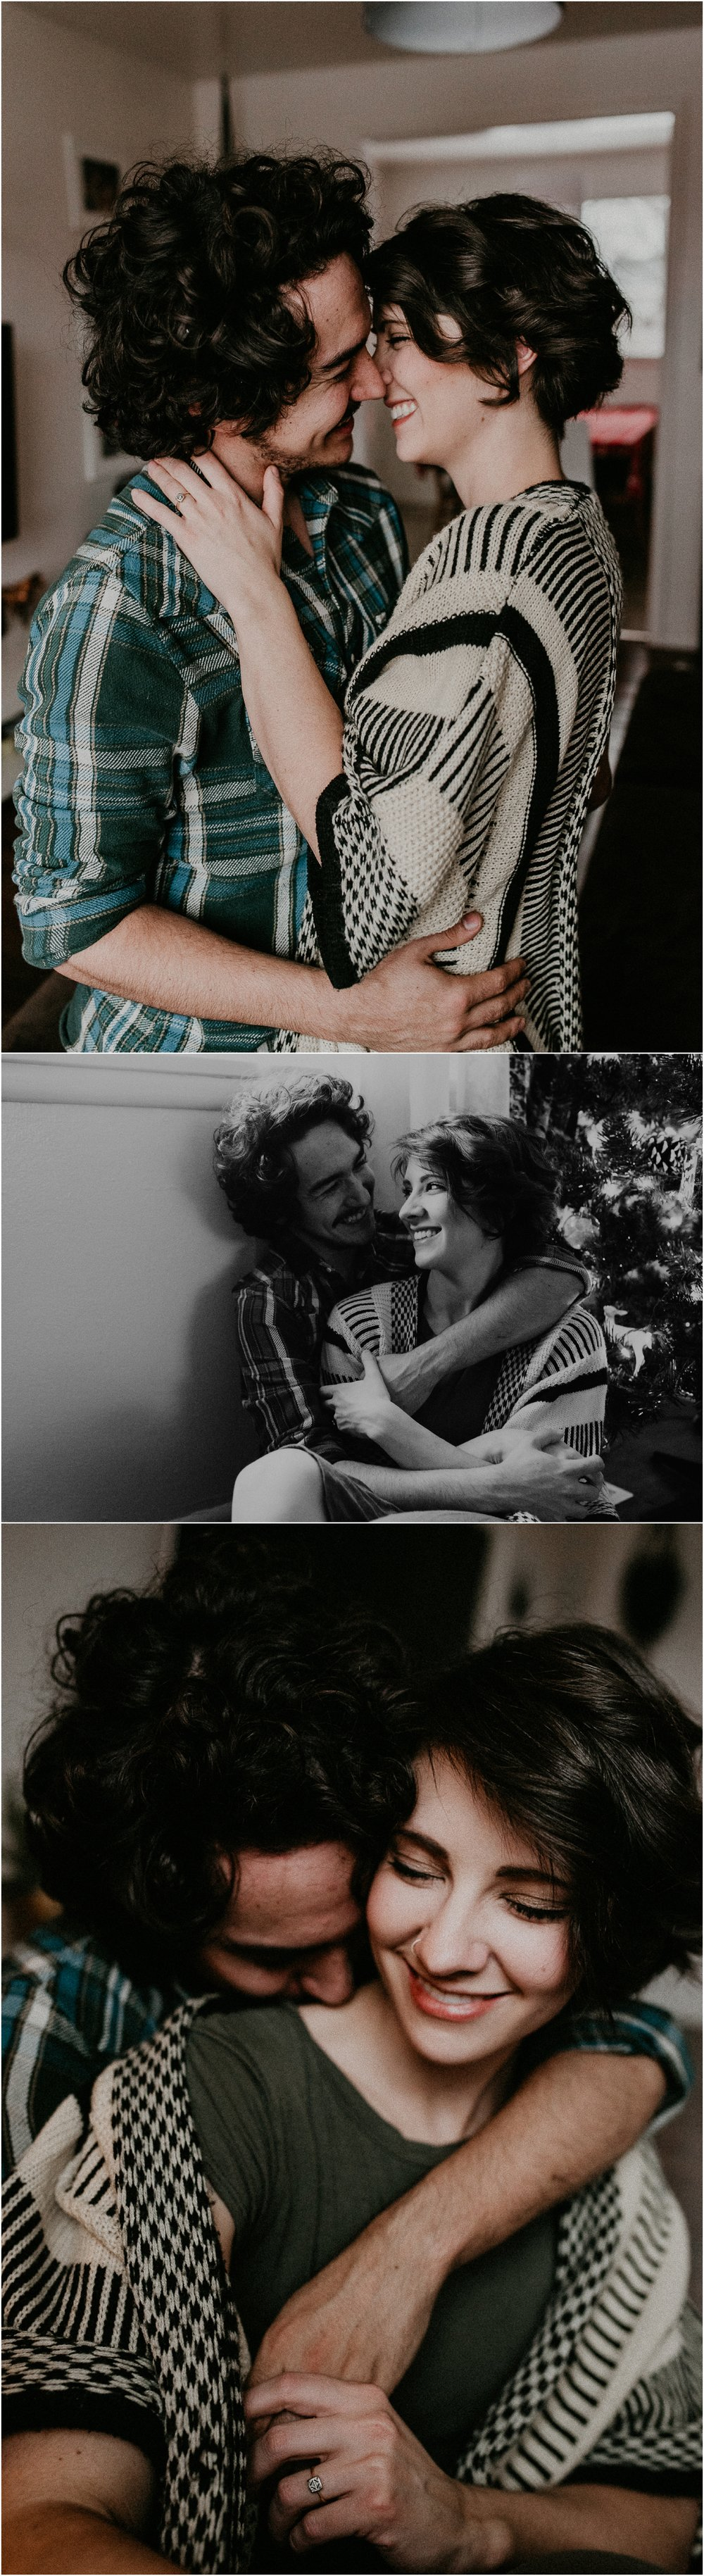 Boise Engagement Wedding Photographer Lifestyle Couples Session In home Dogs Christmas Winter Laughter Love